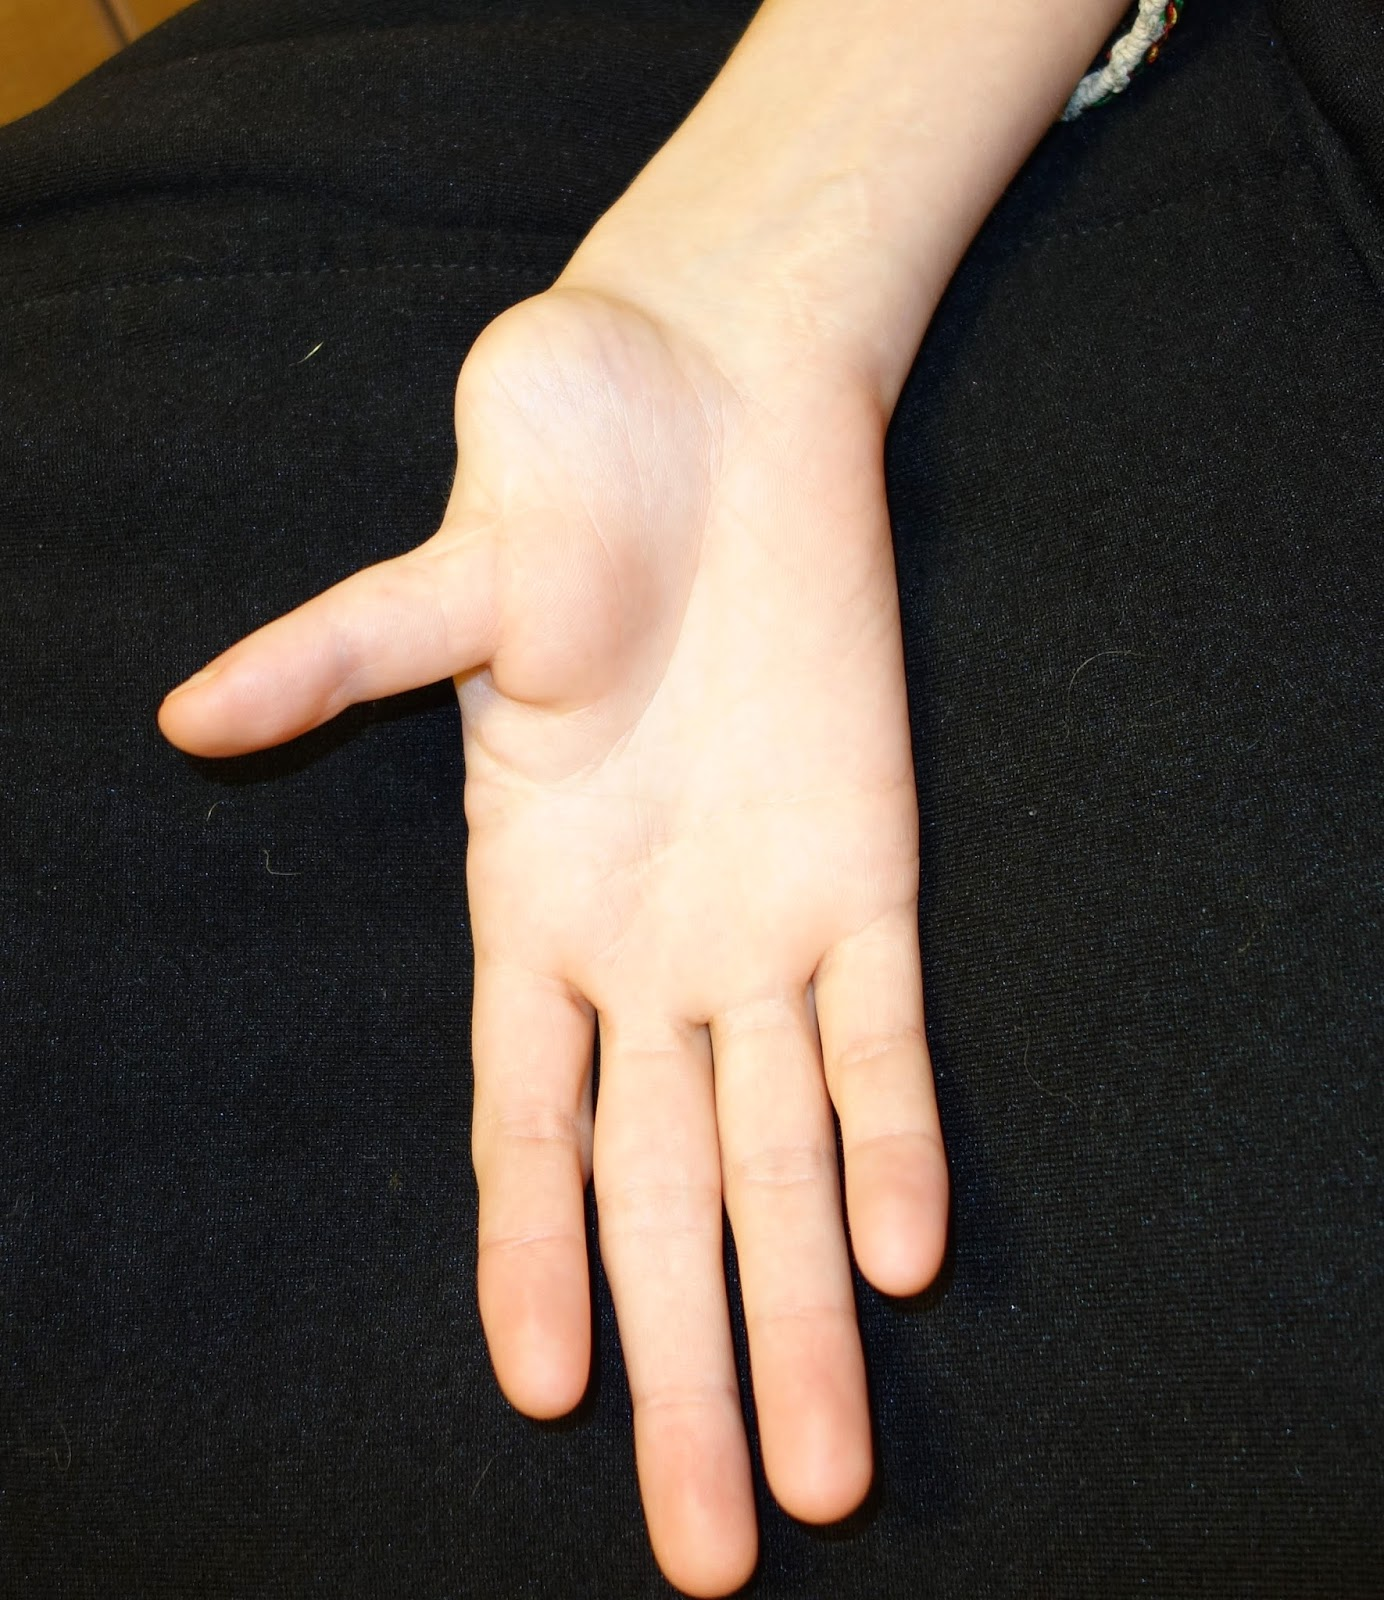 Congenital Hand And Arm Differences Thumb Deformity In Untreated